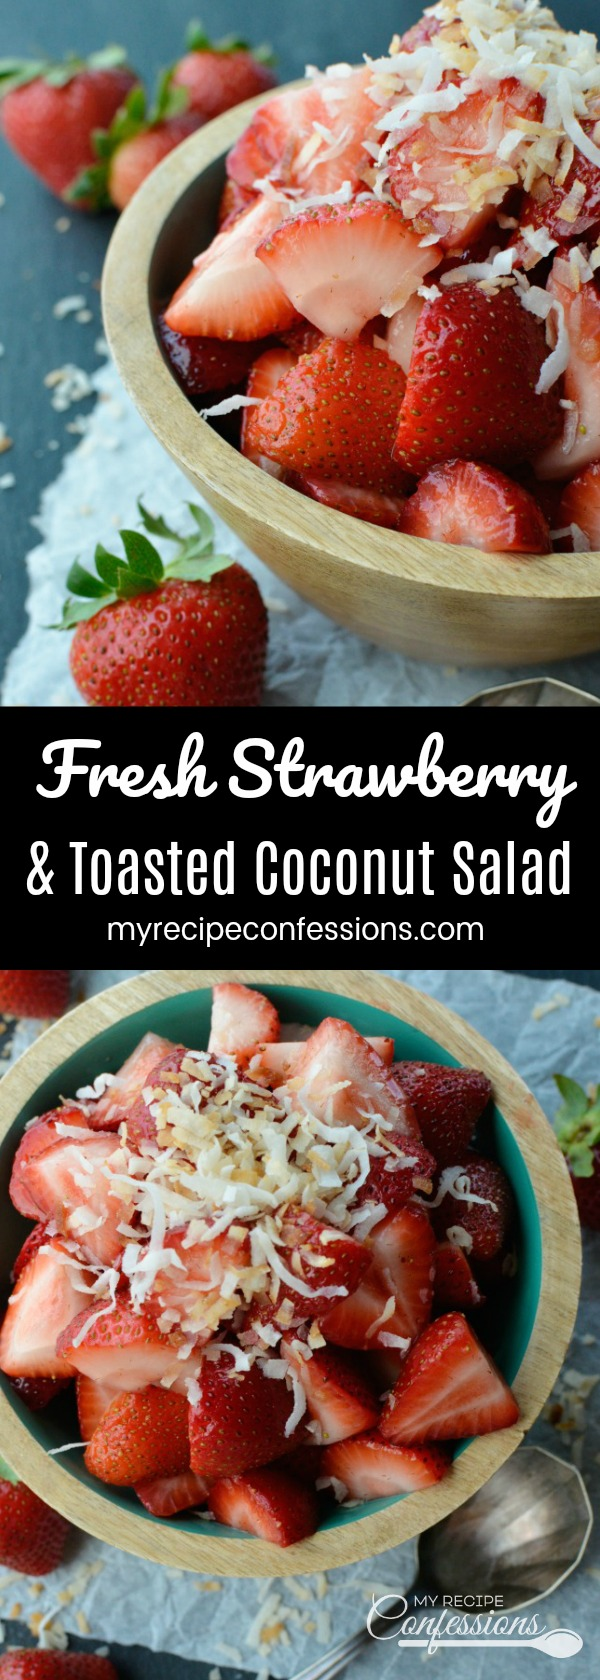 Fresh Strawberry and Toasted Coconut Salad is the easiest fruit salad recipe you will ever make! The toasted coconut is amazing with the fresh strawberries. It's so good you will want to skip dessert and just eat this salad instead!